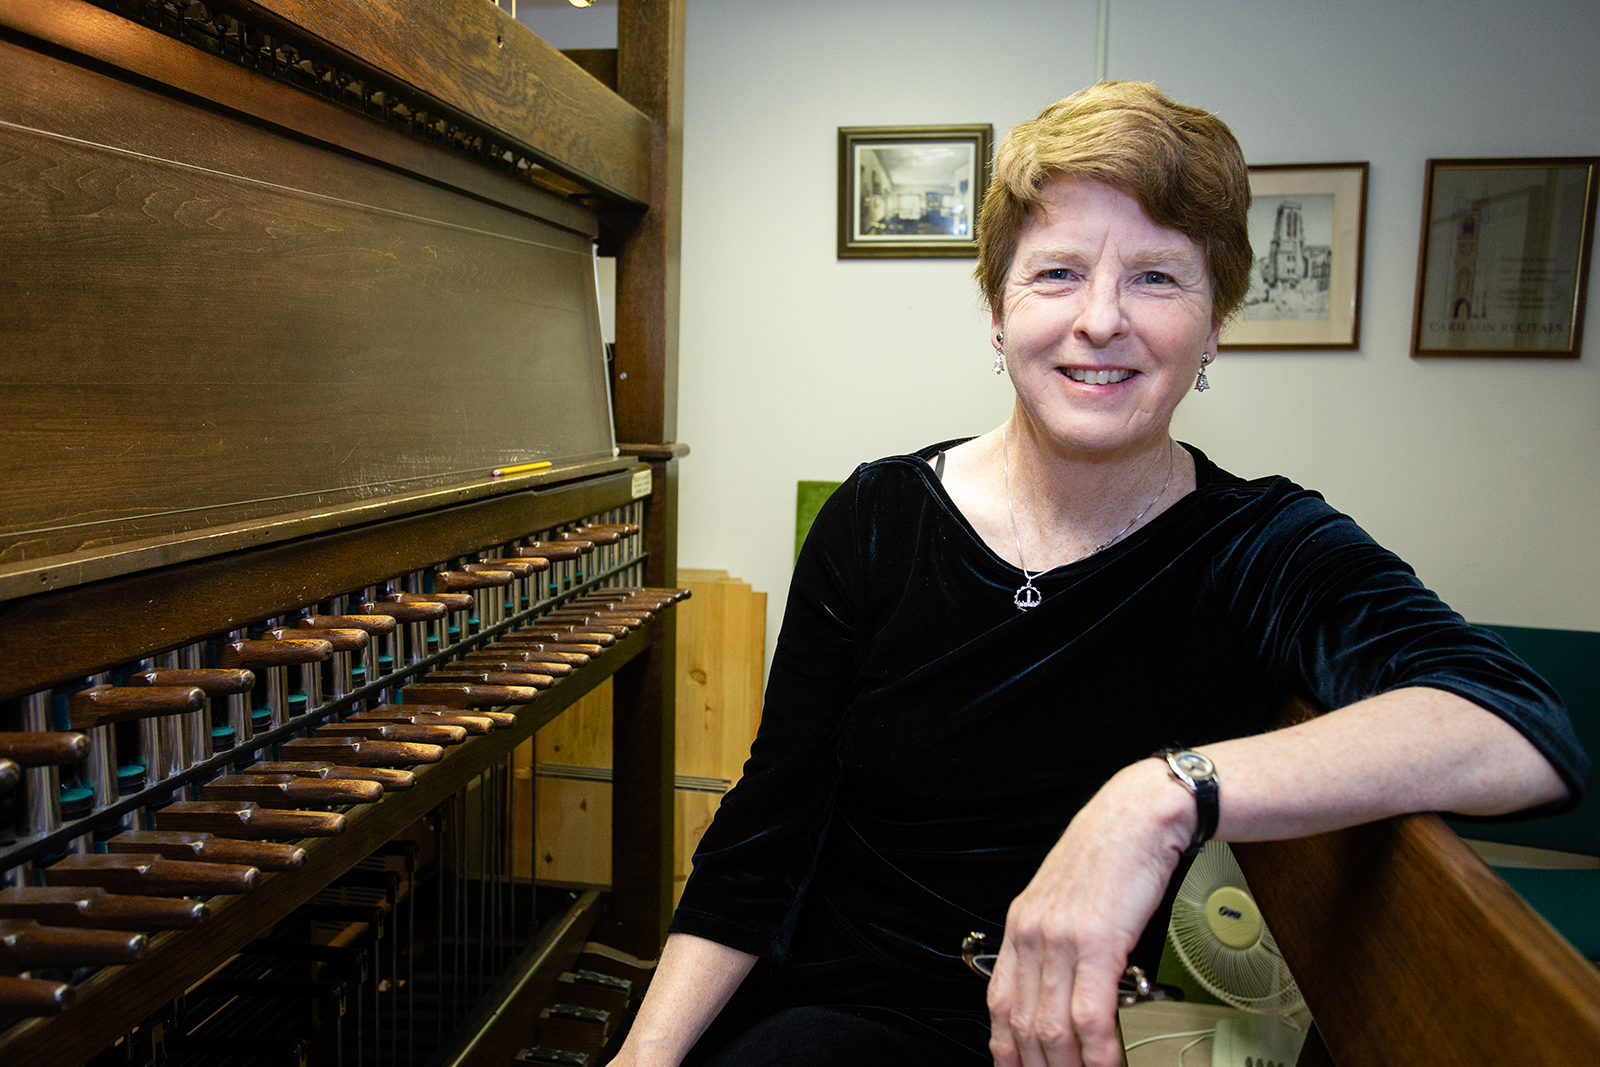 Dominion carillonneur Andrea McCrady with the practice keyboard in her office